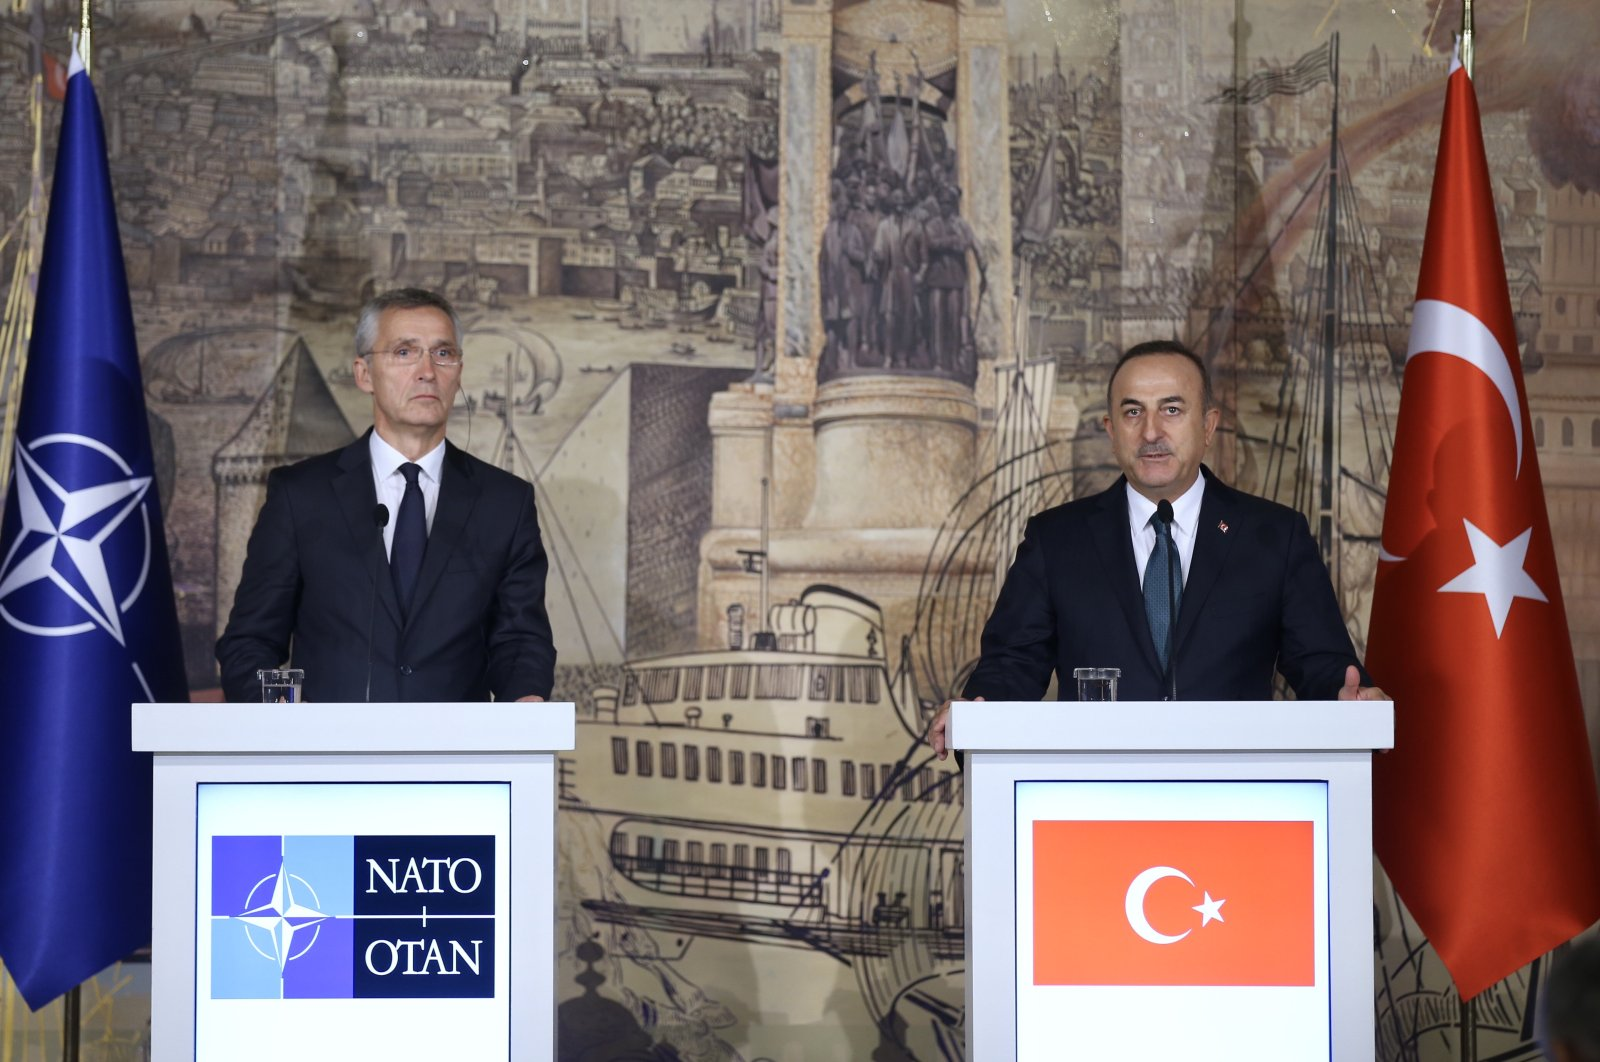 Foreign Minister Mevlüt Çavuşoğlu with NATO chief Jens Stoltenberg at a joint press conference in Istanbul, Oct.14, 2020 (AA Photo)